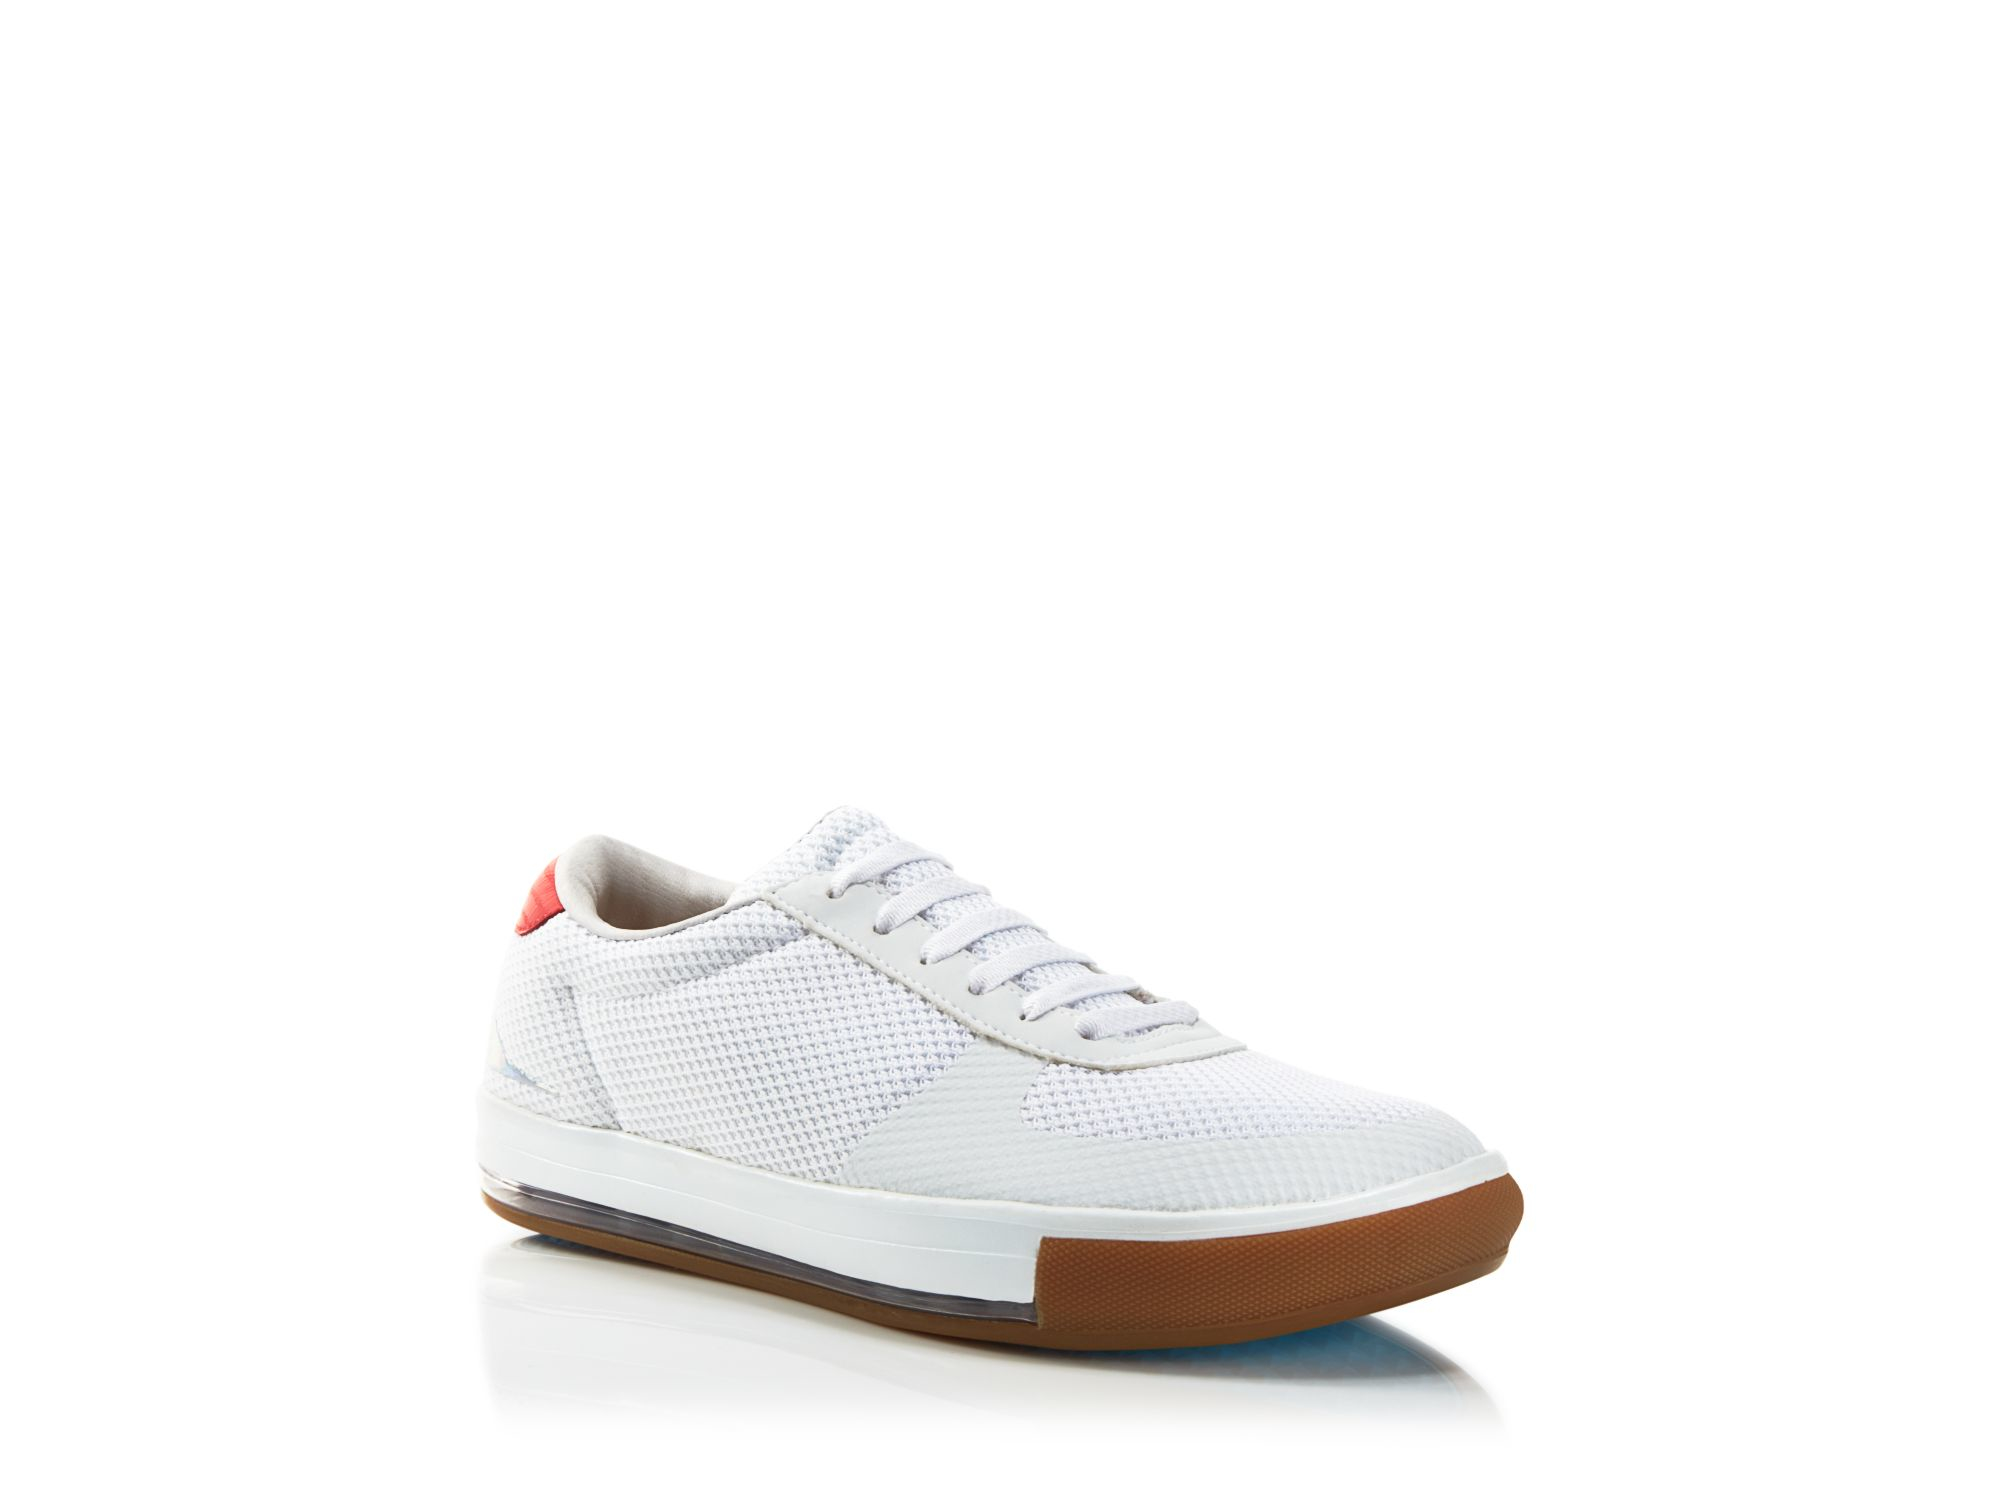 Many of the trendy sneakers today are available in all-white color and mesh. White is an excellent color of choice, which will make the footwear versatile. White is an excellent color of choice, which will make the footwear versatile.